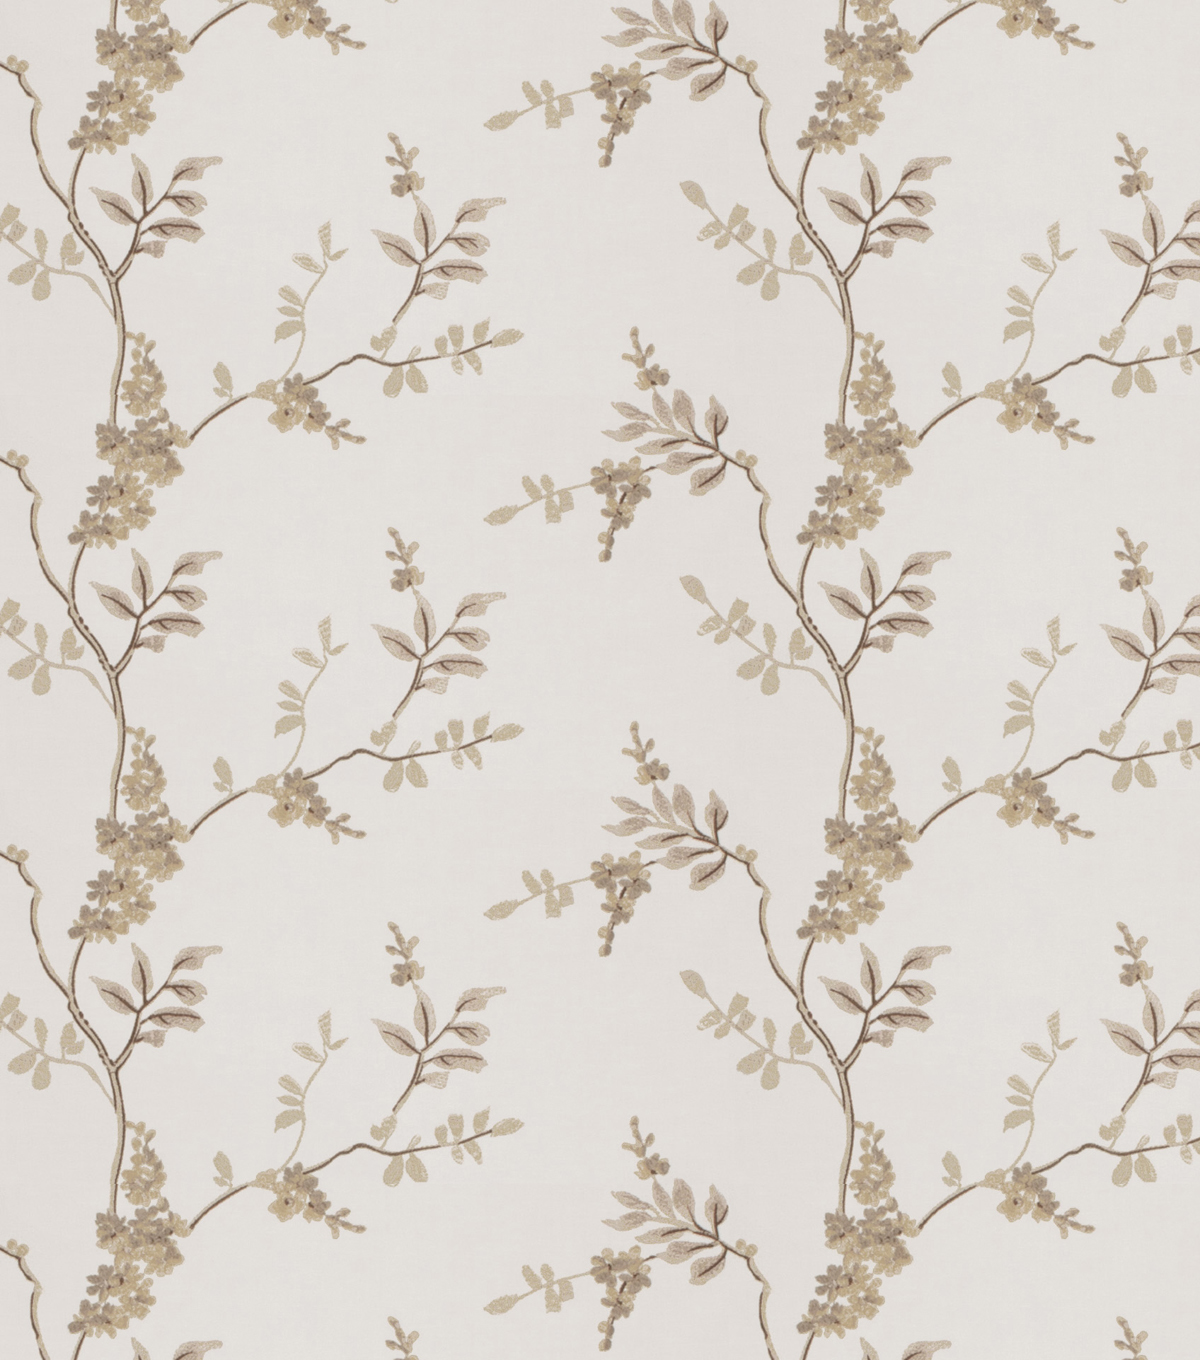 Eaton Square Print Fabric-Rosehips/Linen